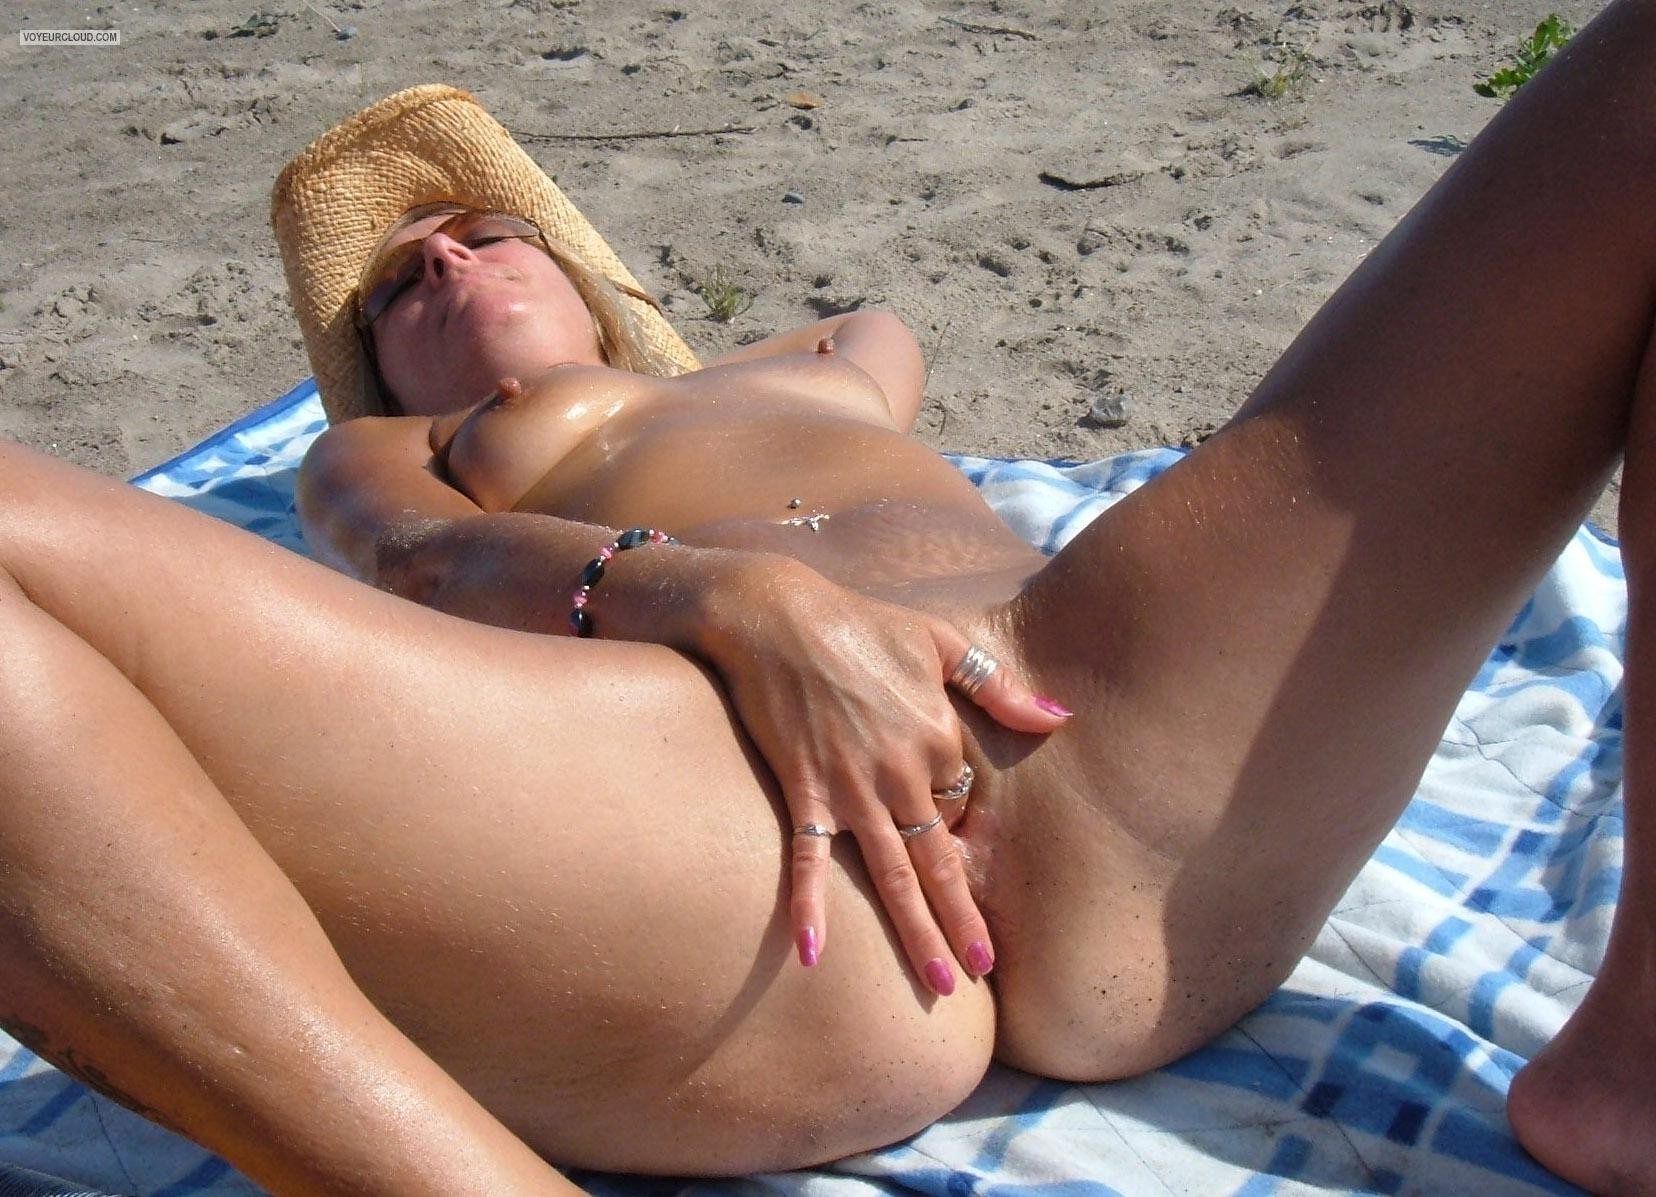 Women fingering at nude beach